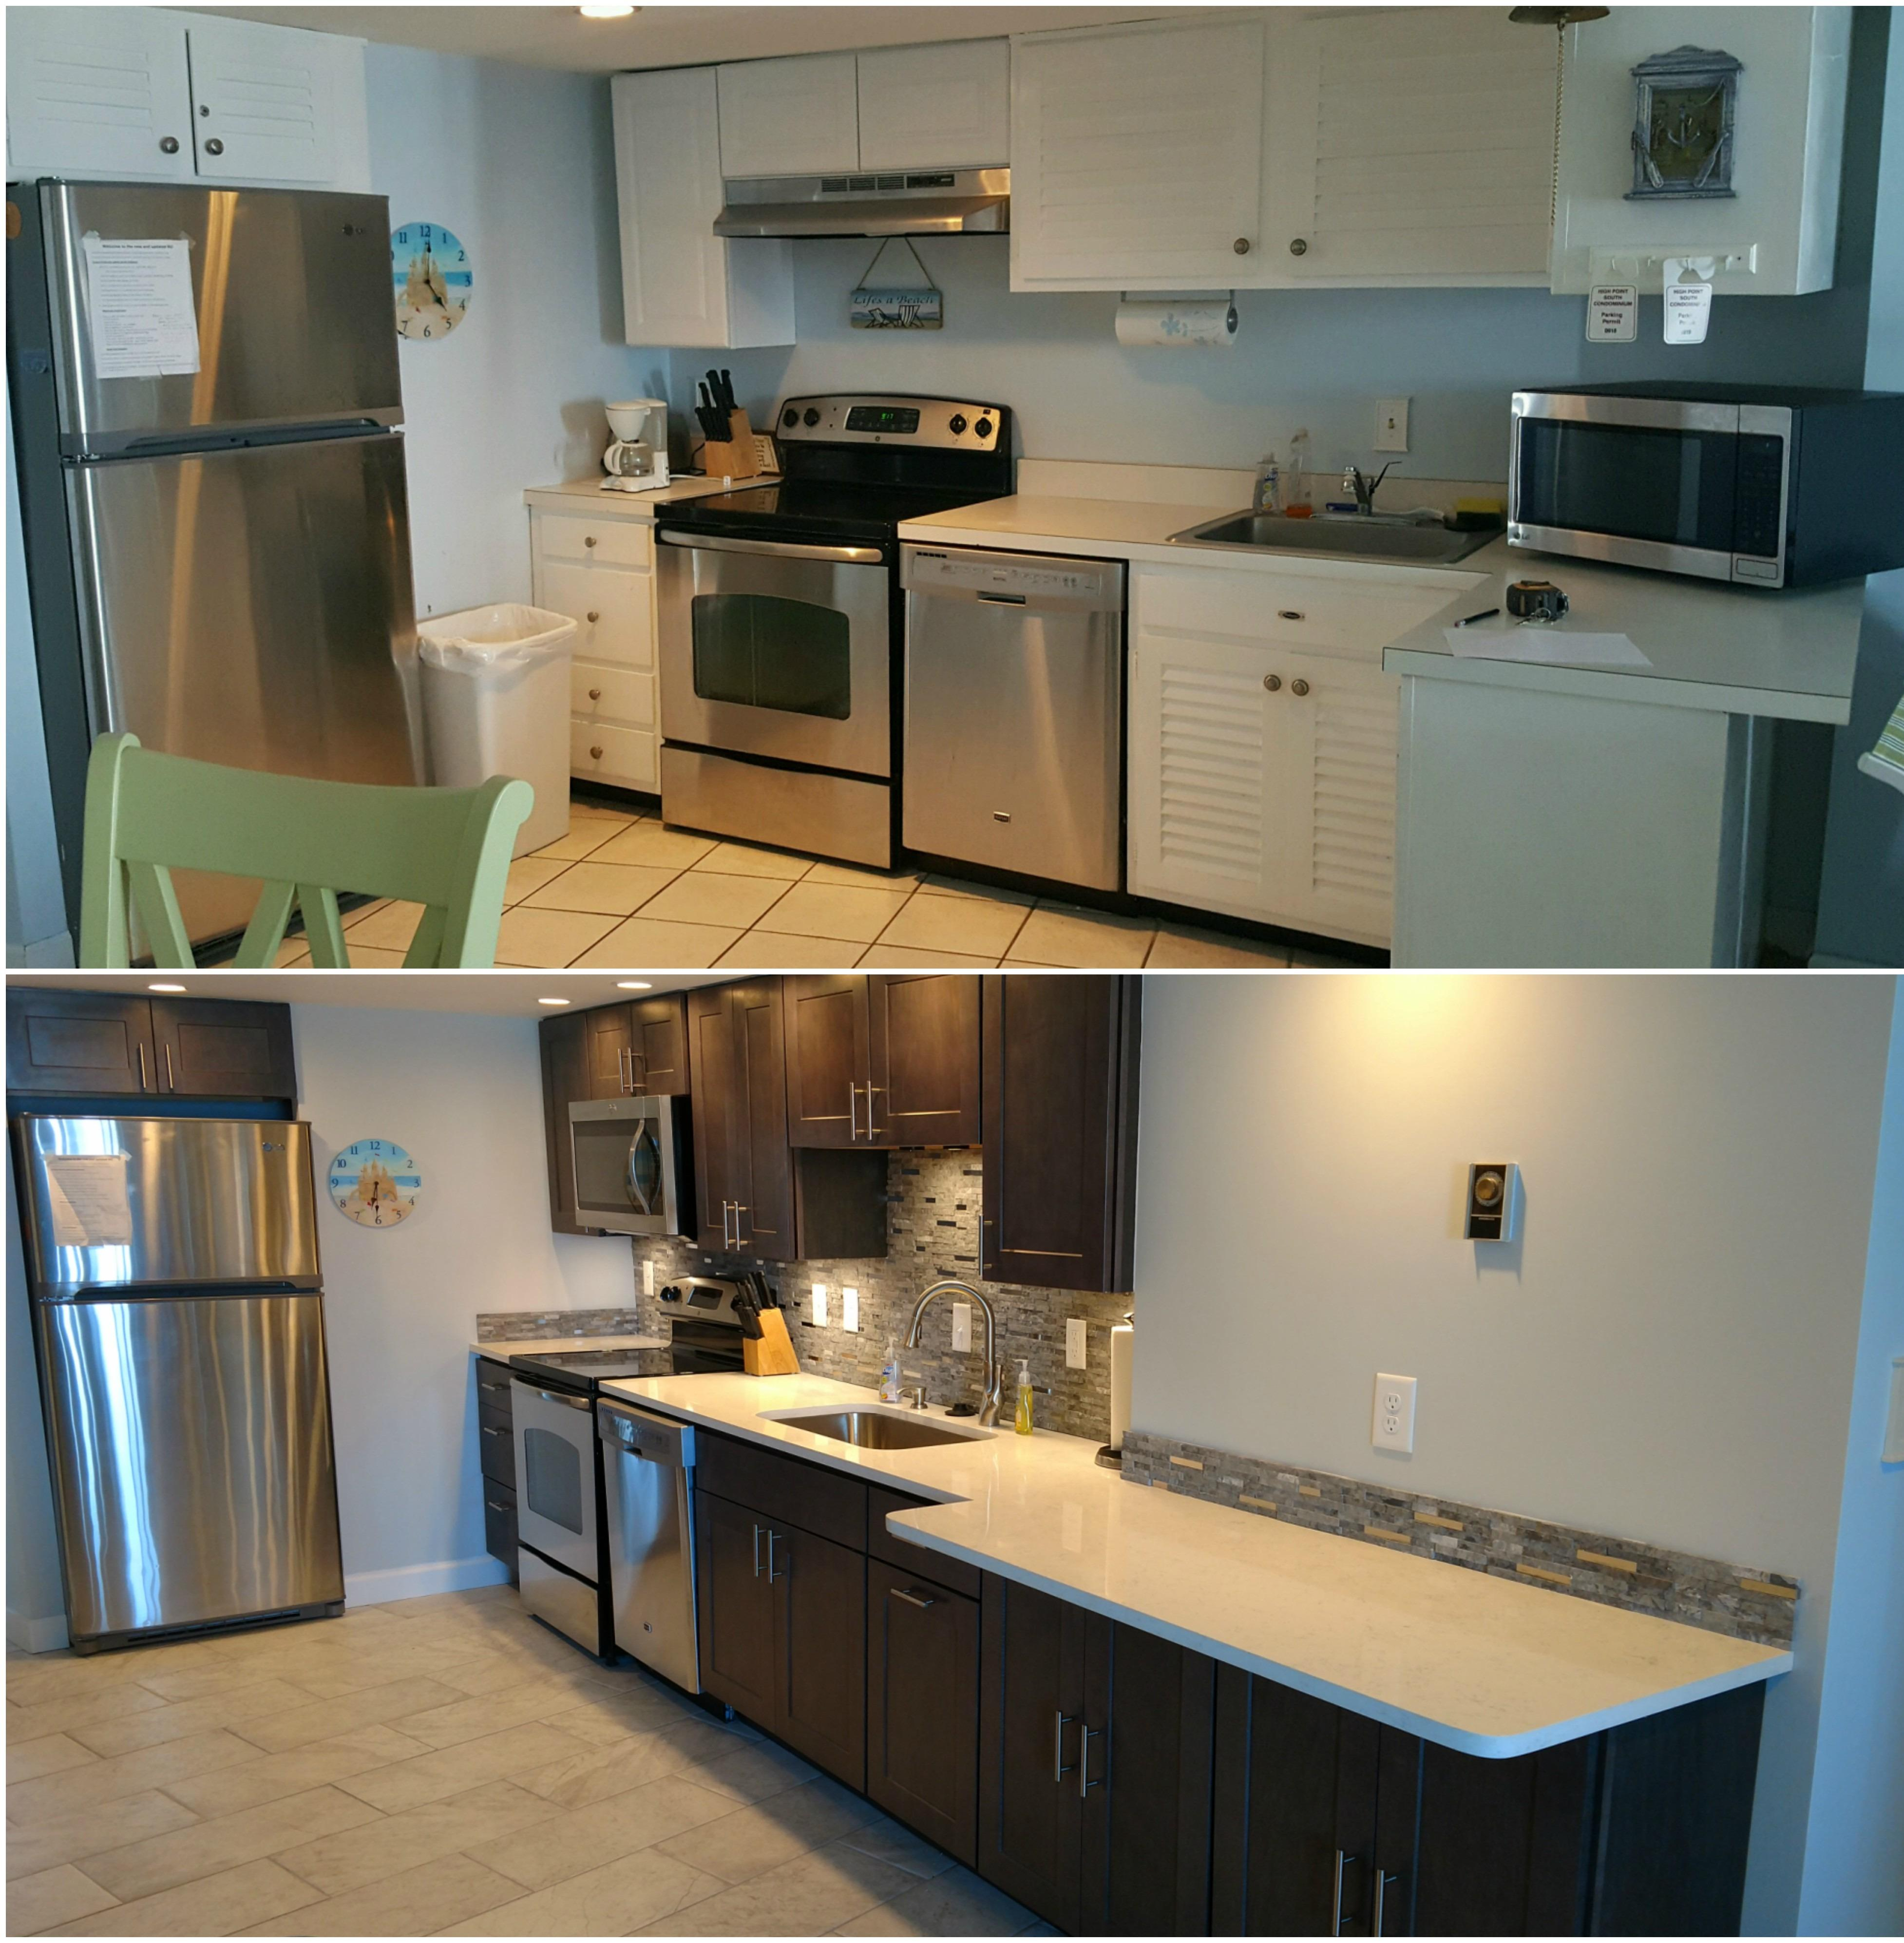 Accurate Upgrades Home Improvements LLC image 19